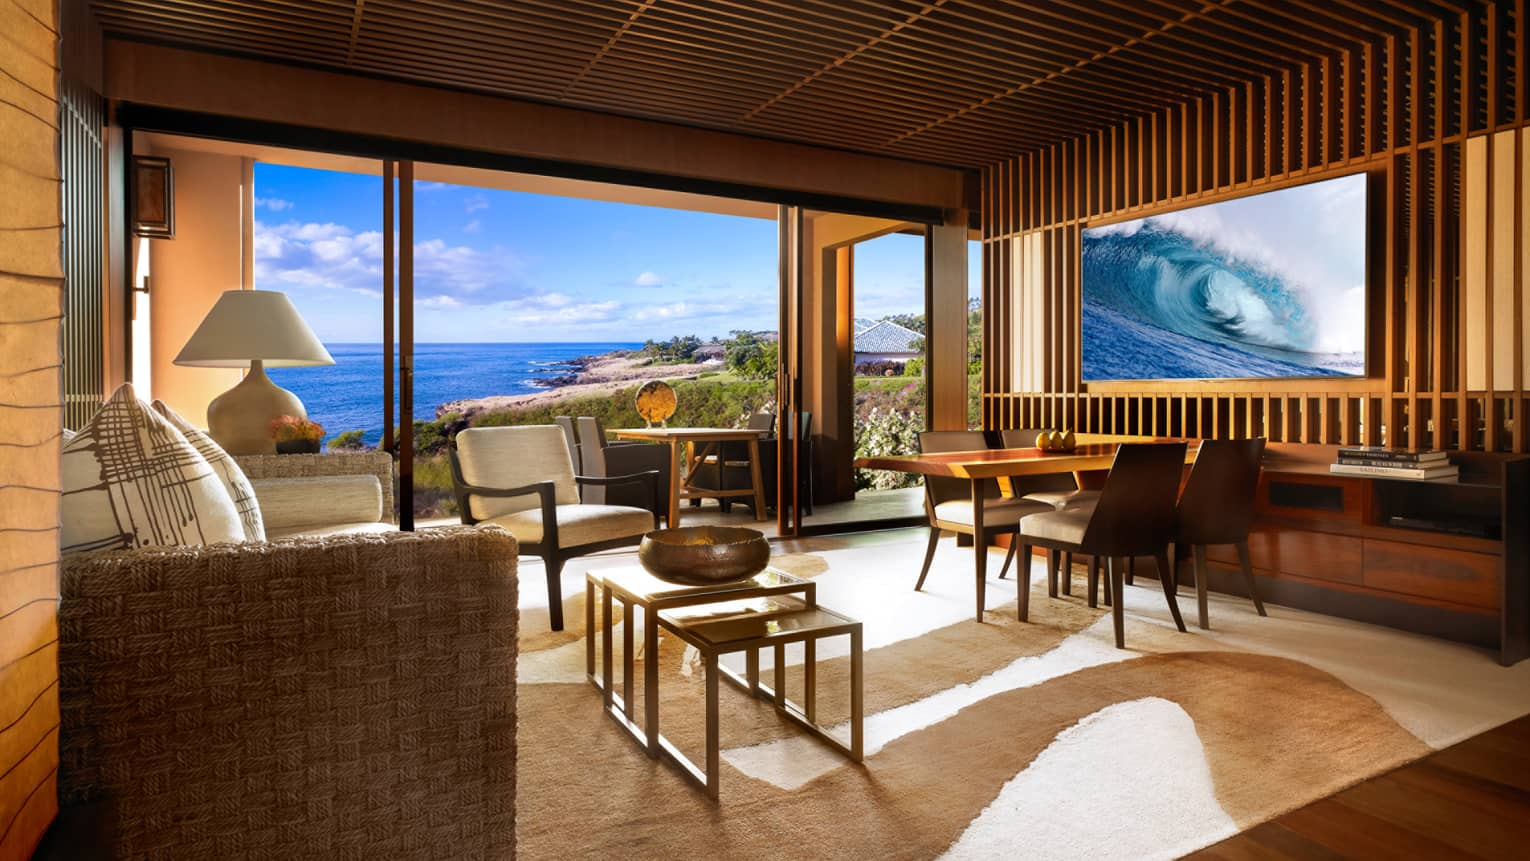 Four Seasons Ocean-View Suite spacious living room with teak-panel walls, sofa, TV displaying waves